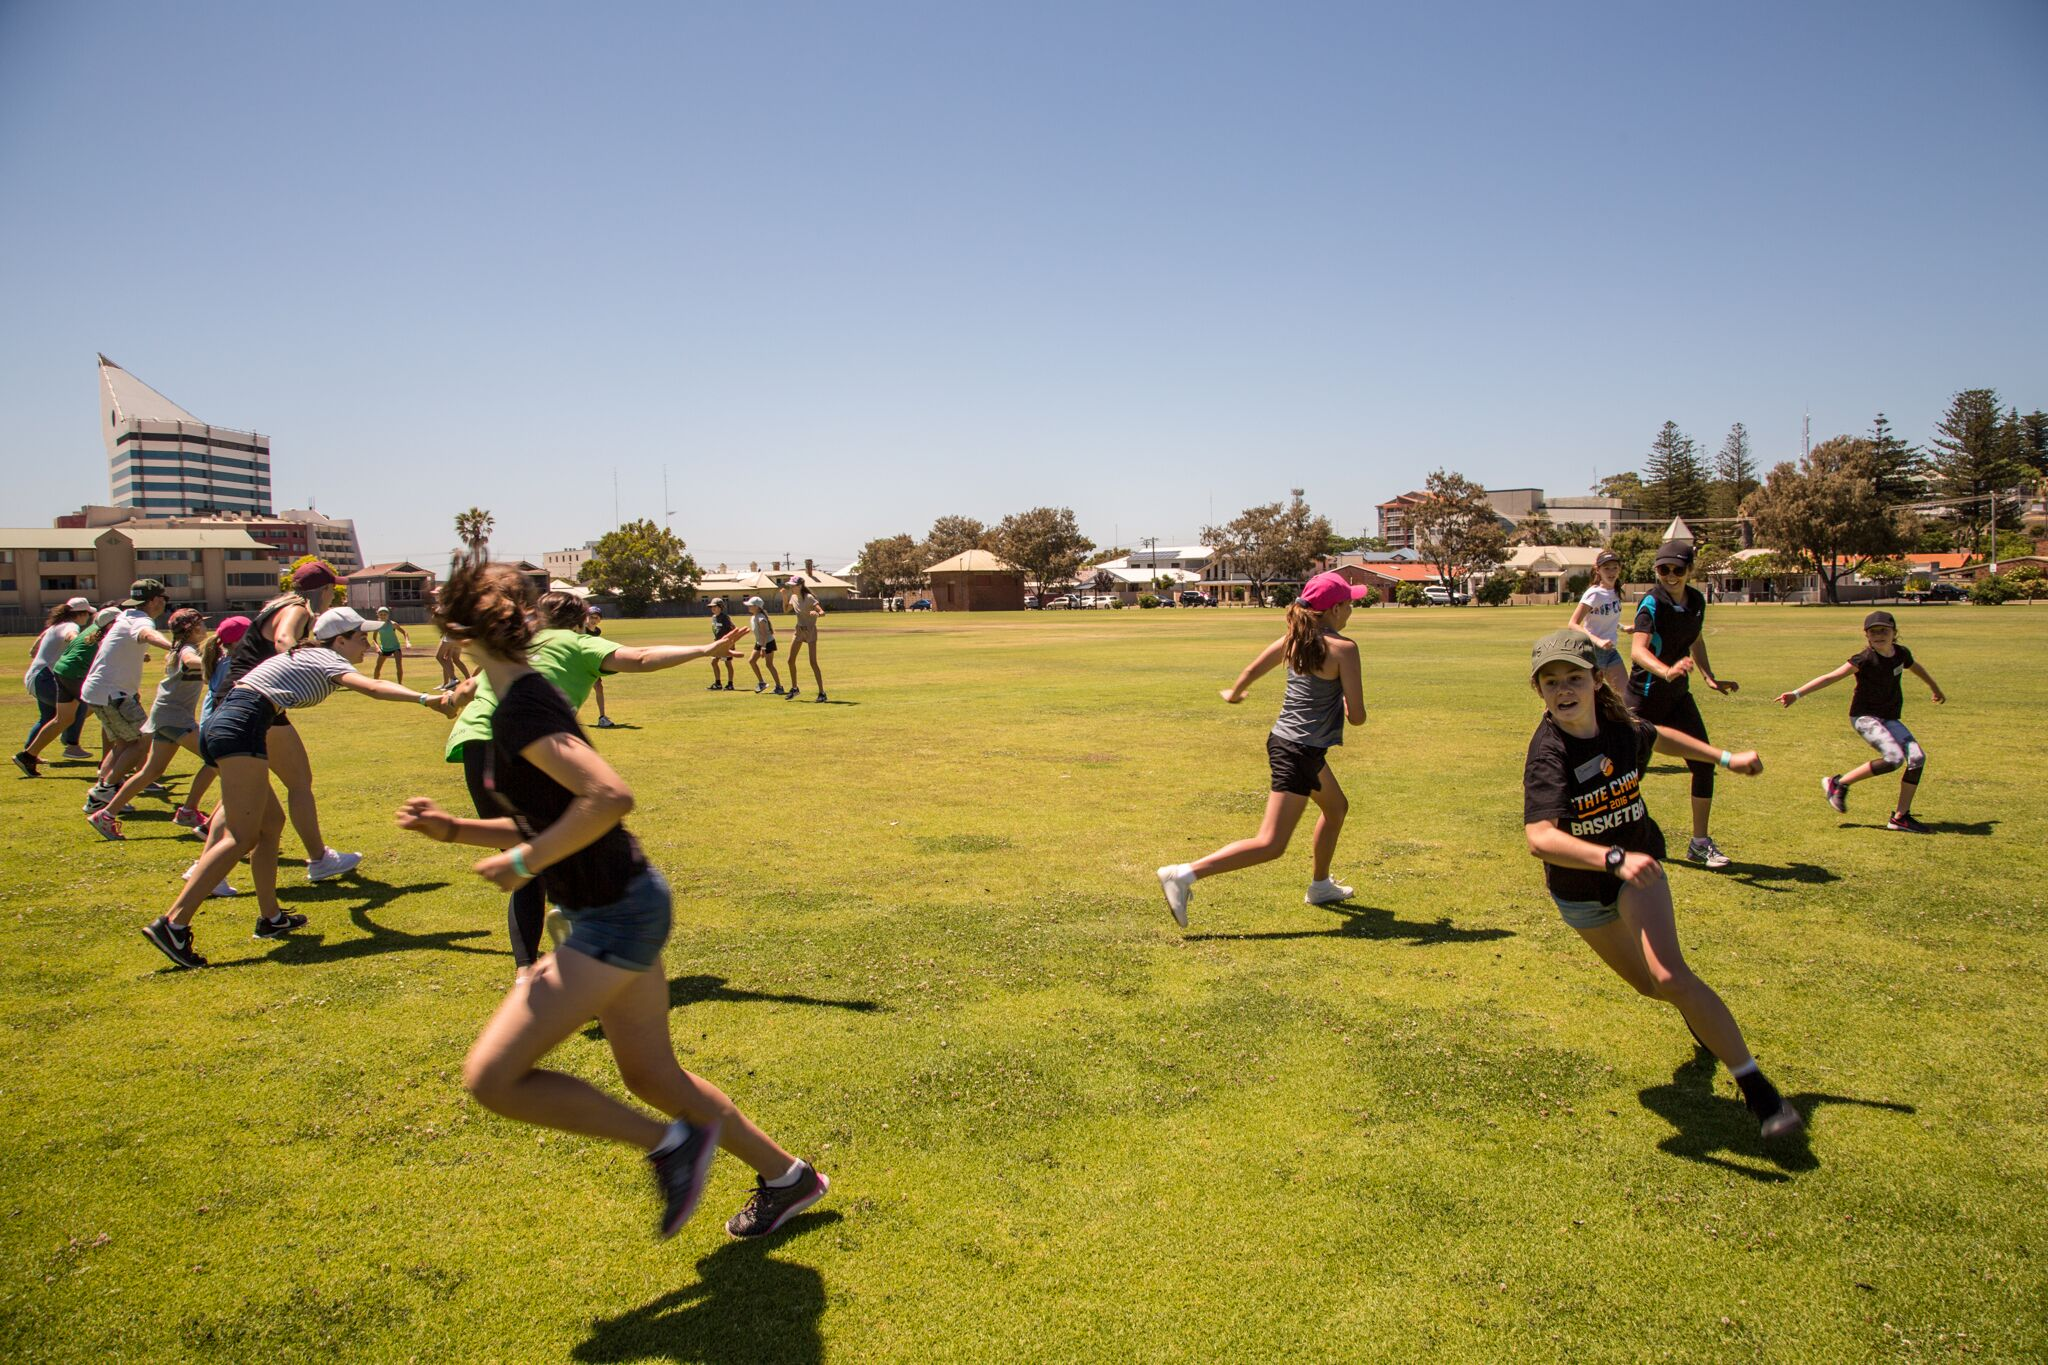 THE HAPPYWHENFIT AMAZE-TEEN RACE EVENT IN BUNBURY